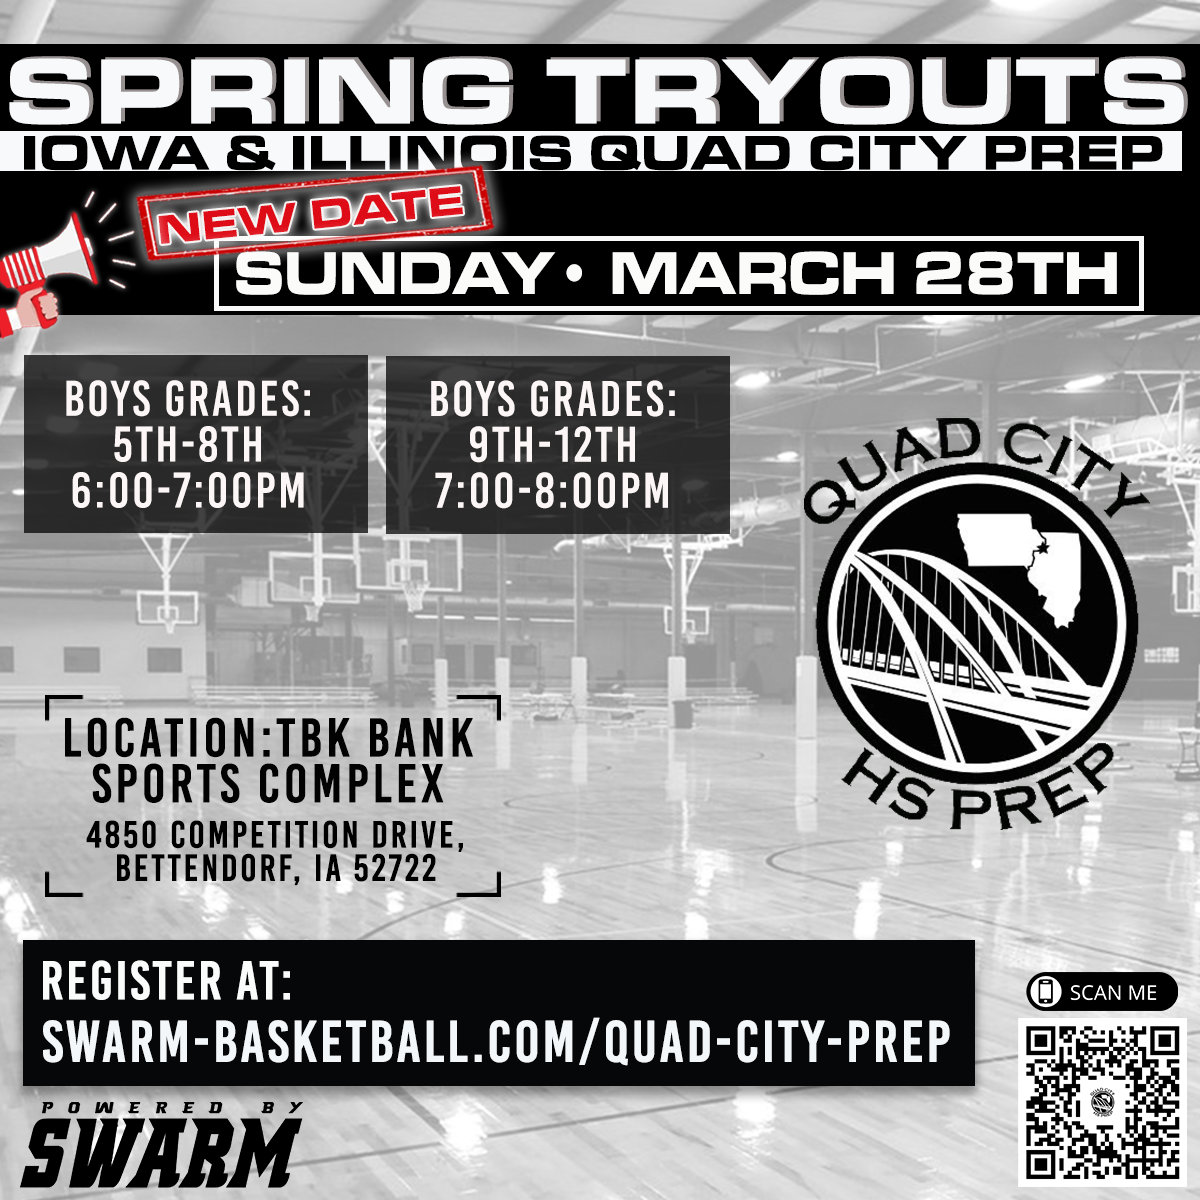 NEWQuadCityPrepSwarmSpring21Tryouts